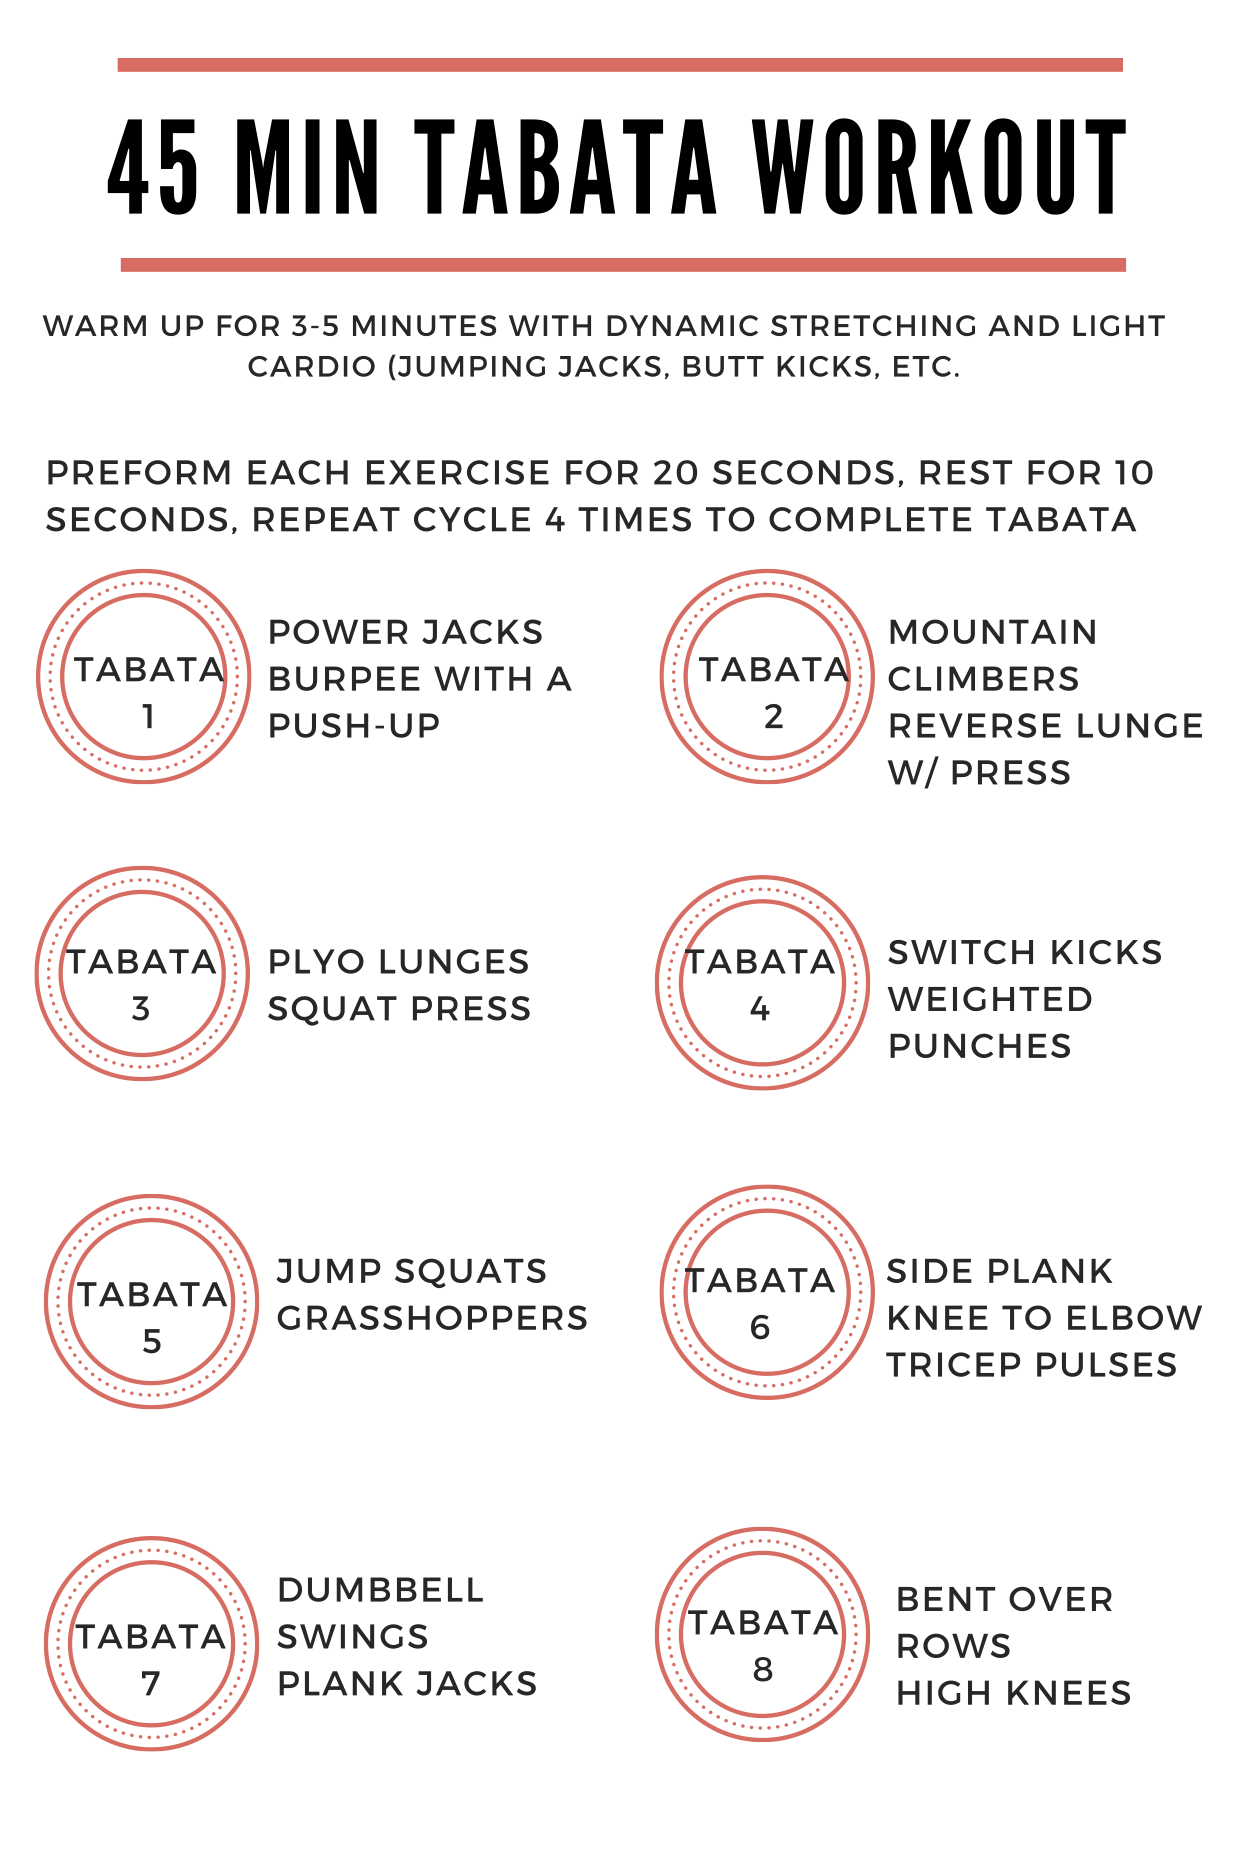 Circuit Training Tabata Hiit Confirm Tuesday Minutes Of Workouts Timers For And Are Included Exercise Hazy Dizzy